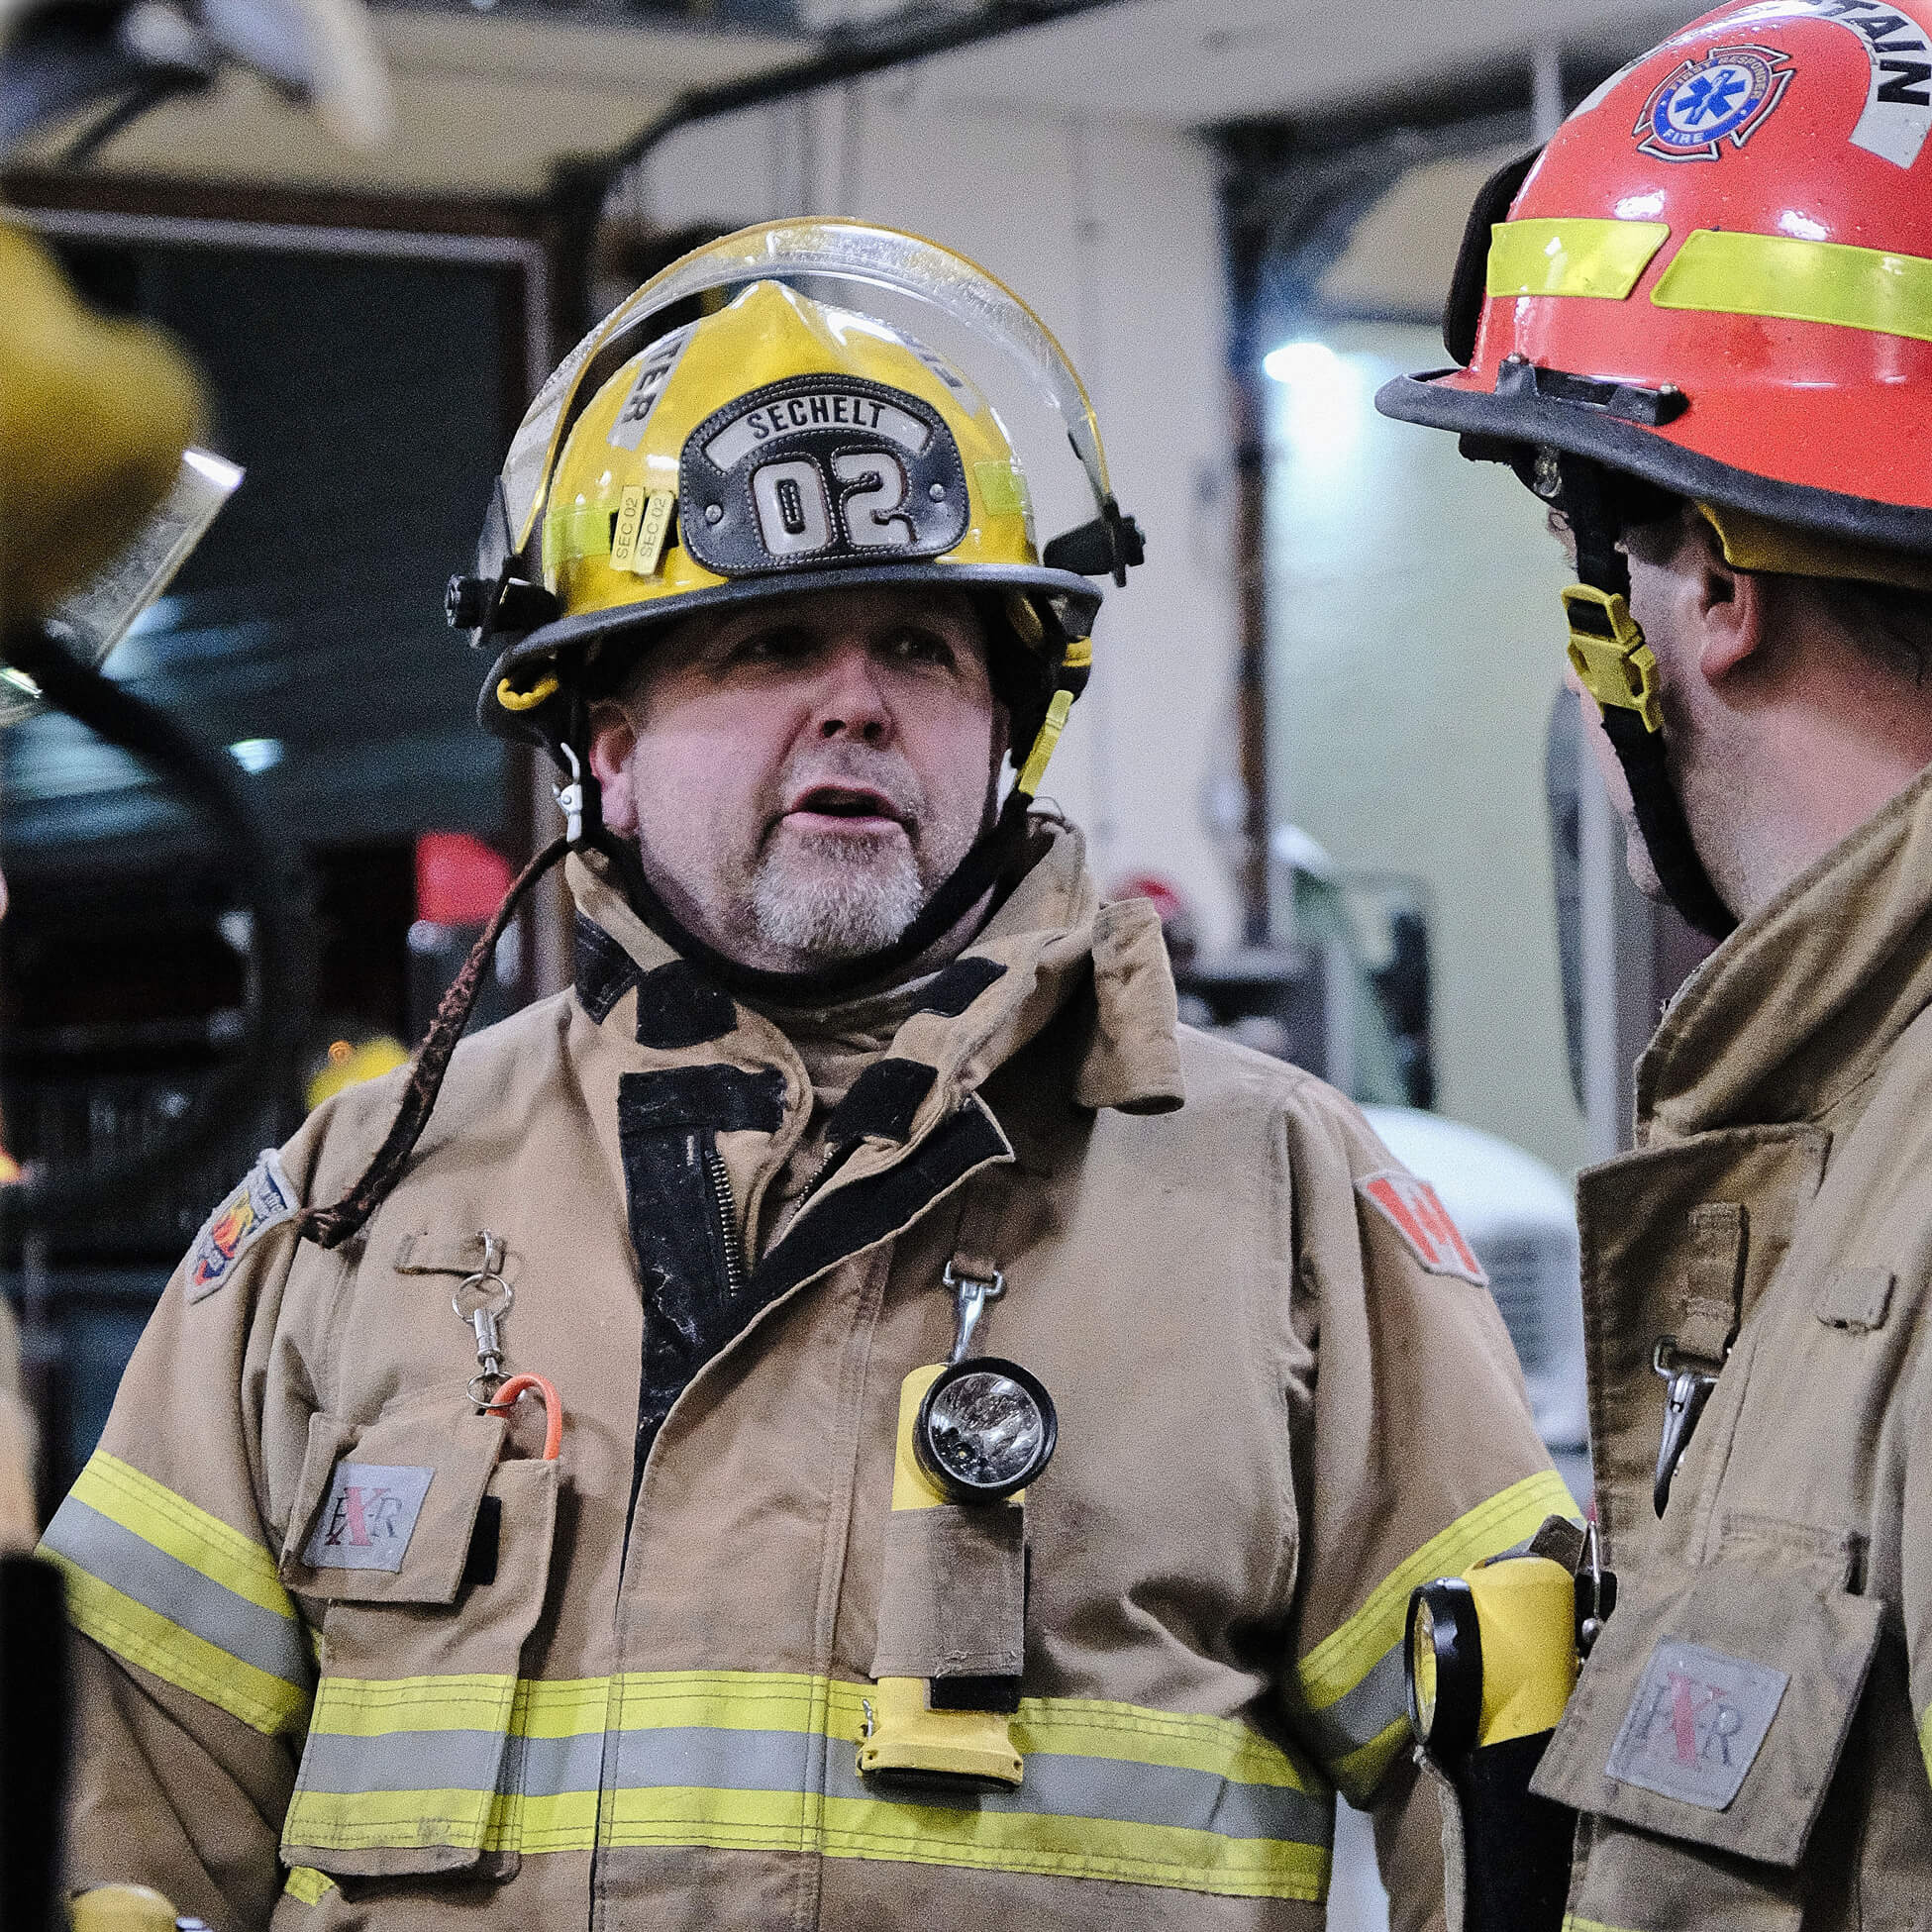 One of our firefighters geared-up